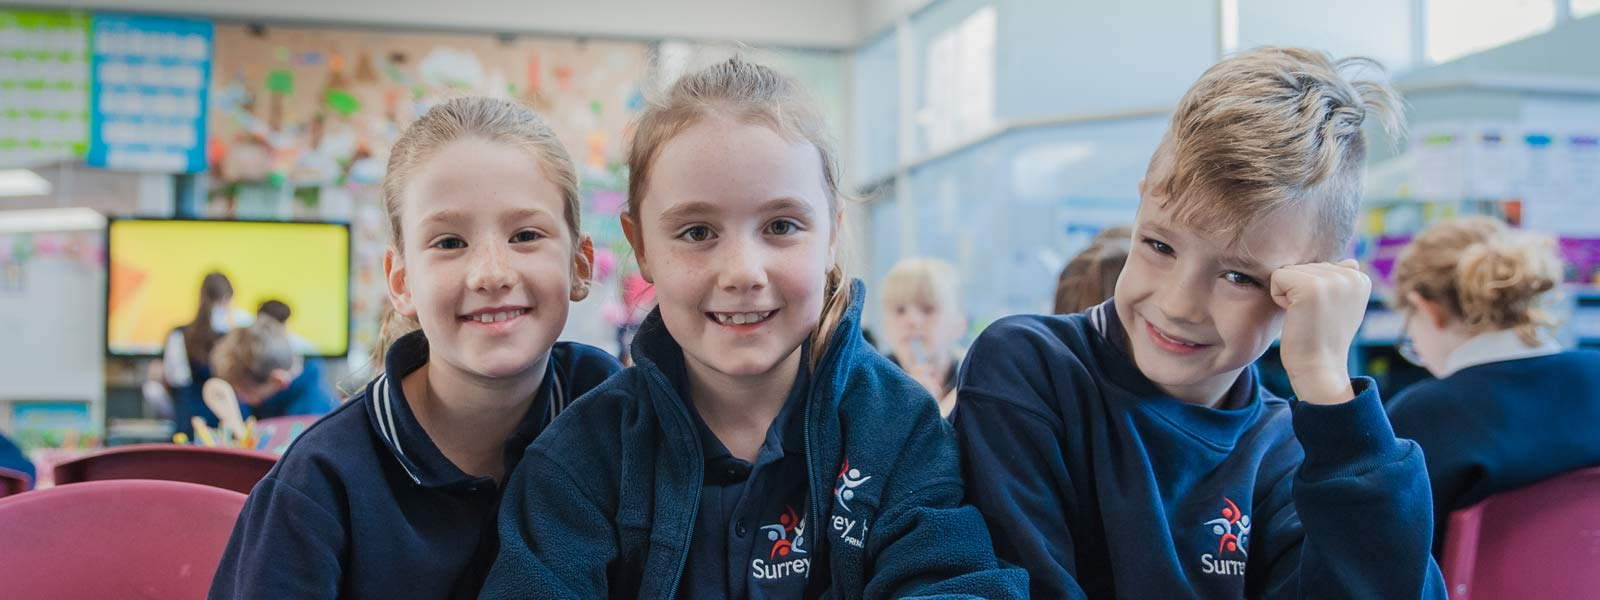 Surrey Hills Primary School - Throwstone Photography